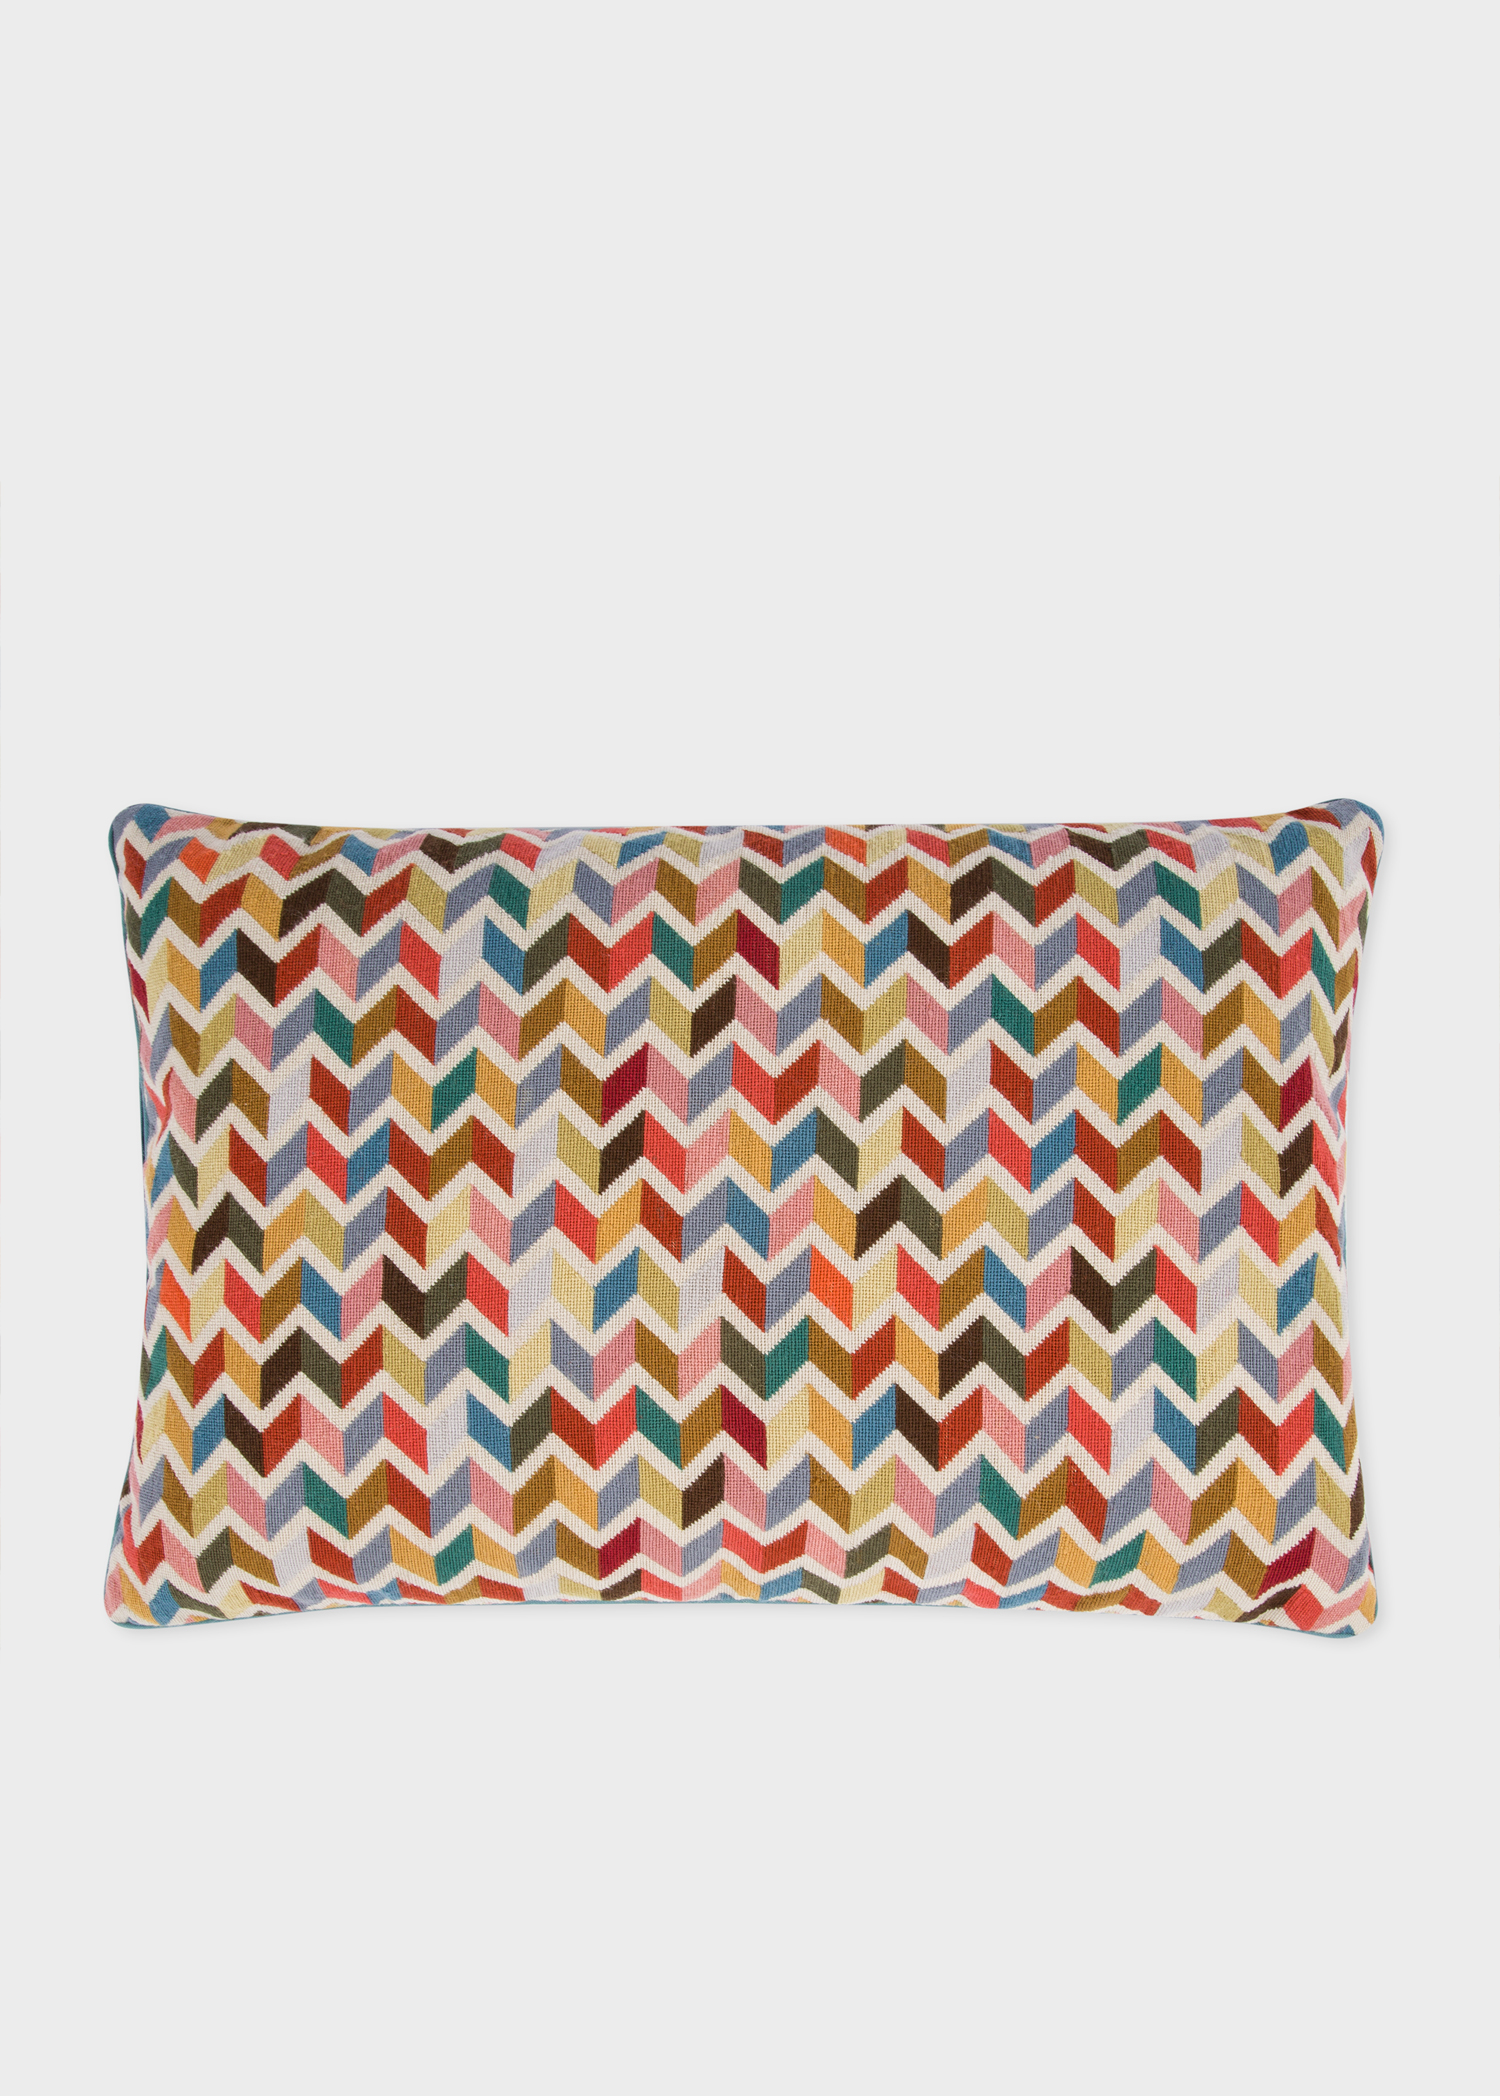 Paul Smith For The Rug Company Multi Coloured Zig Zag